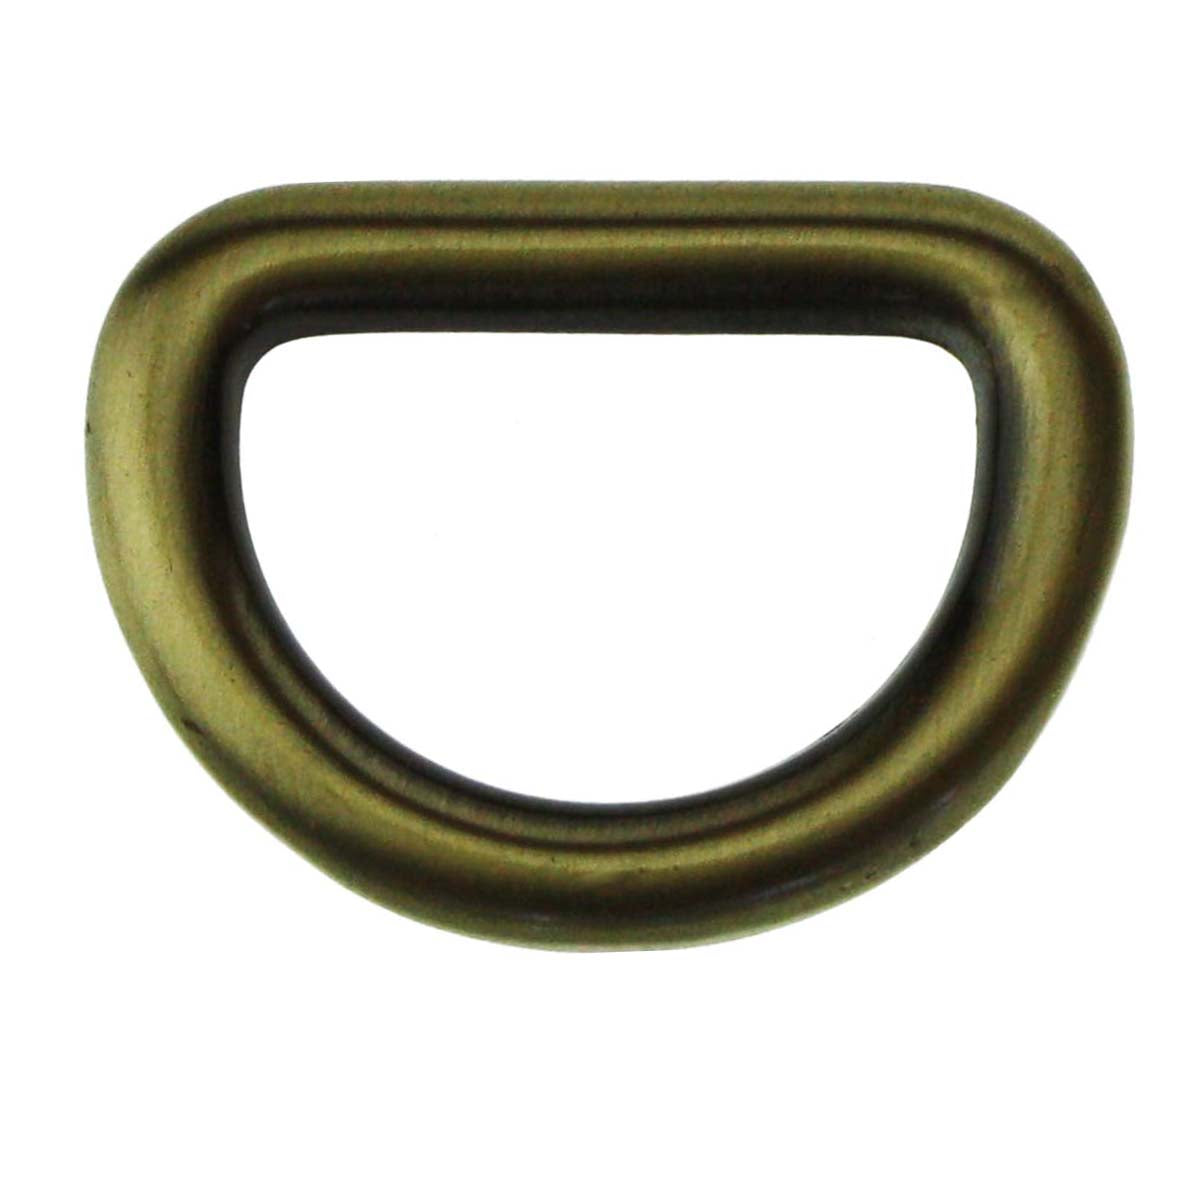 1 Quot Thick D Ring Pd135 Valenz Hardware